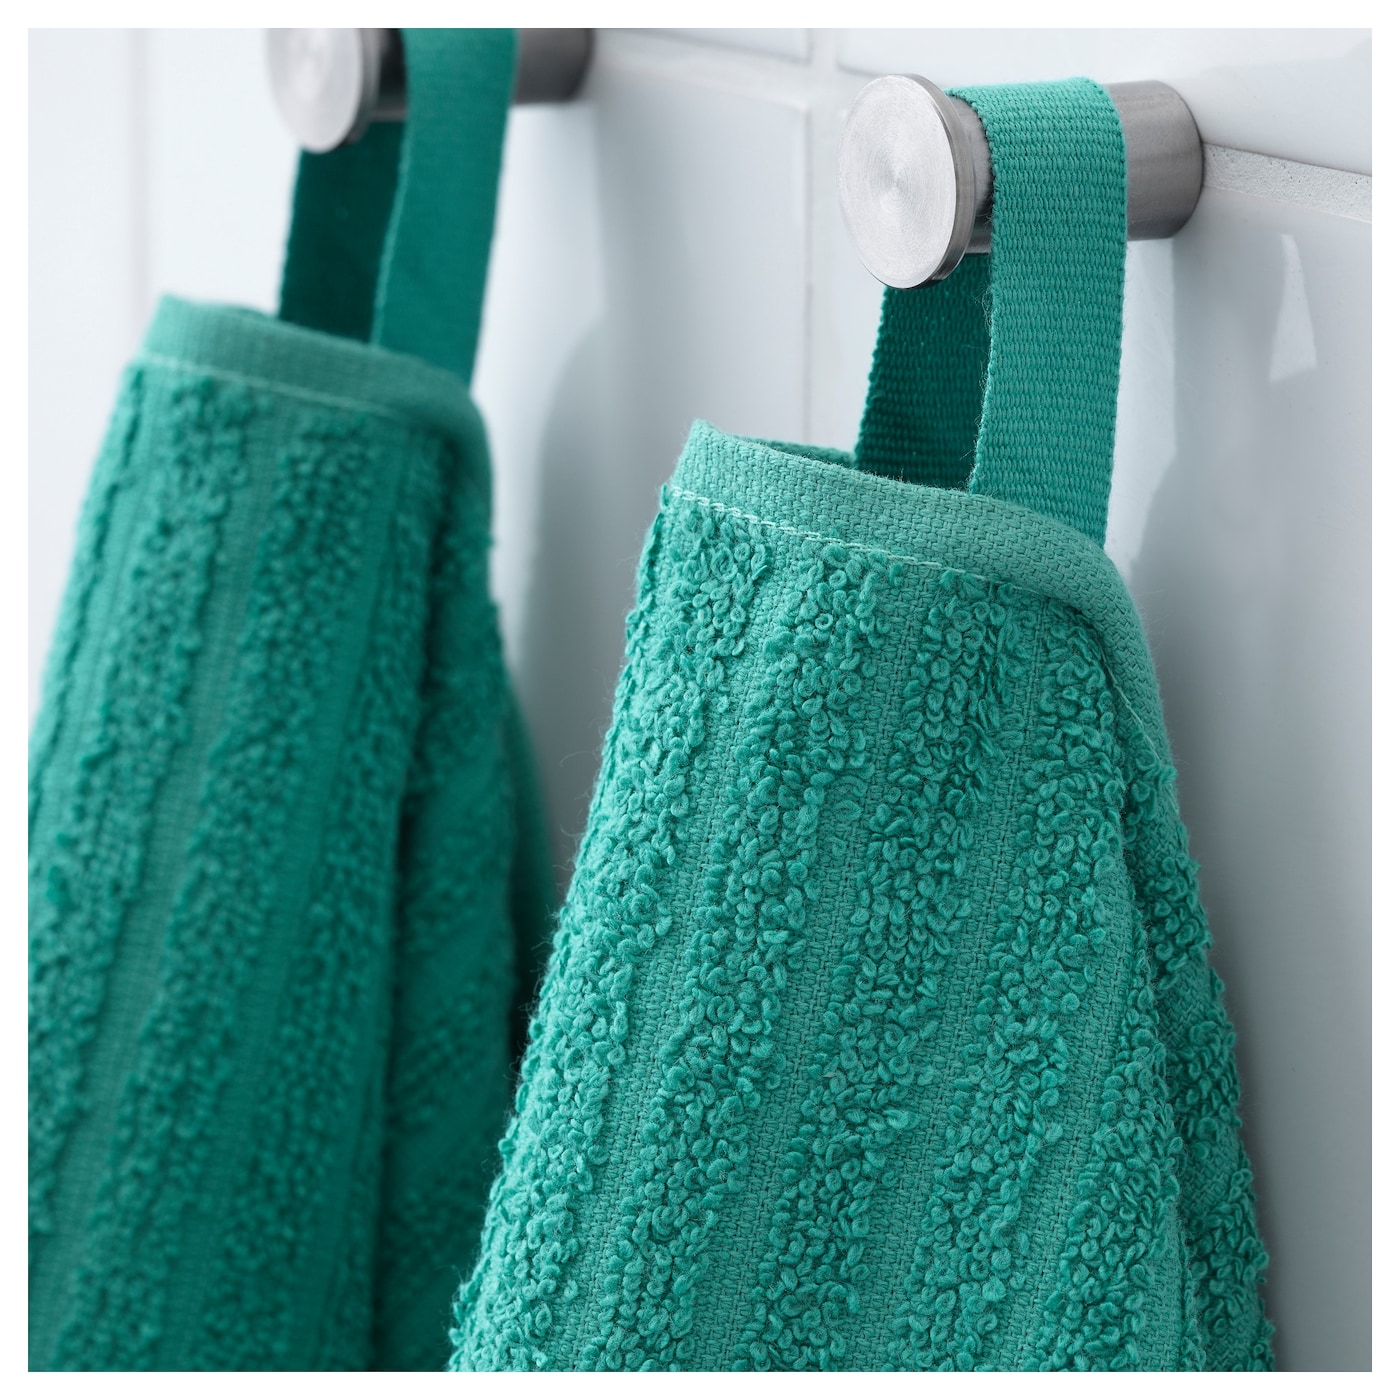 IKEA VÅGSJÖN bath towel A terry towel that is soft and absorbent (weight 390 g/m²).